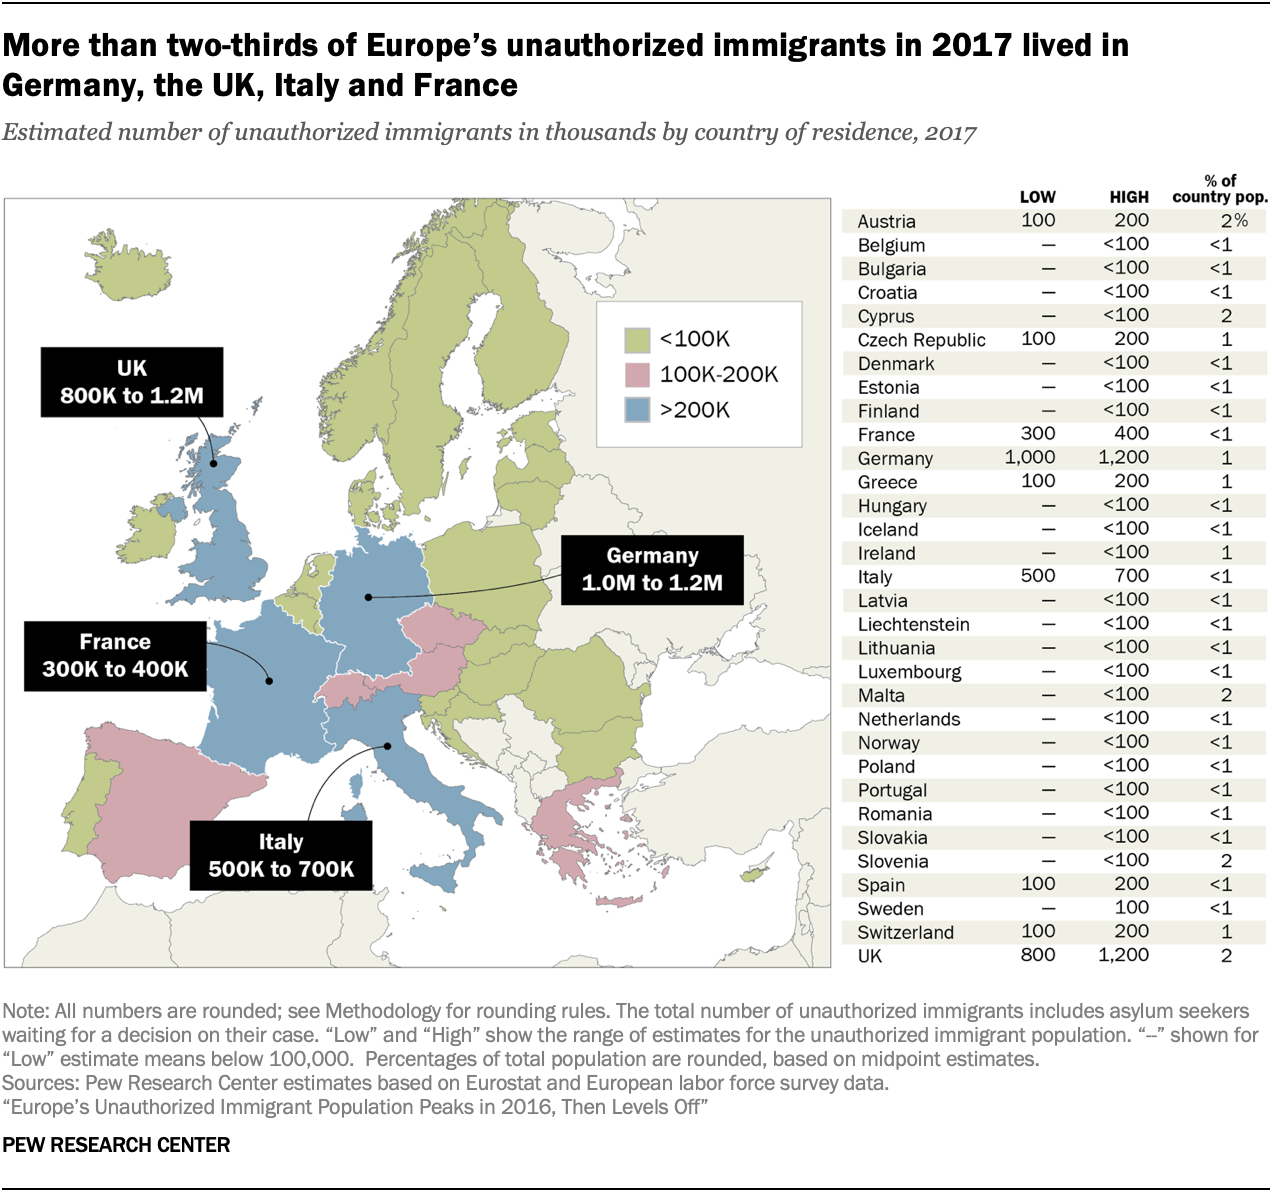 A chart showing More than two-thirds of Europe's unauthorized immigrants in 2017 lived in Germany, the UK, Italy and France